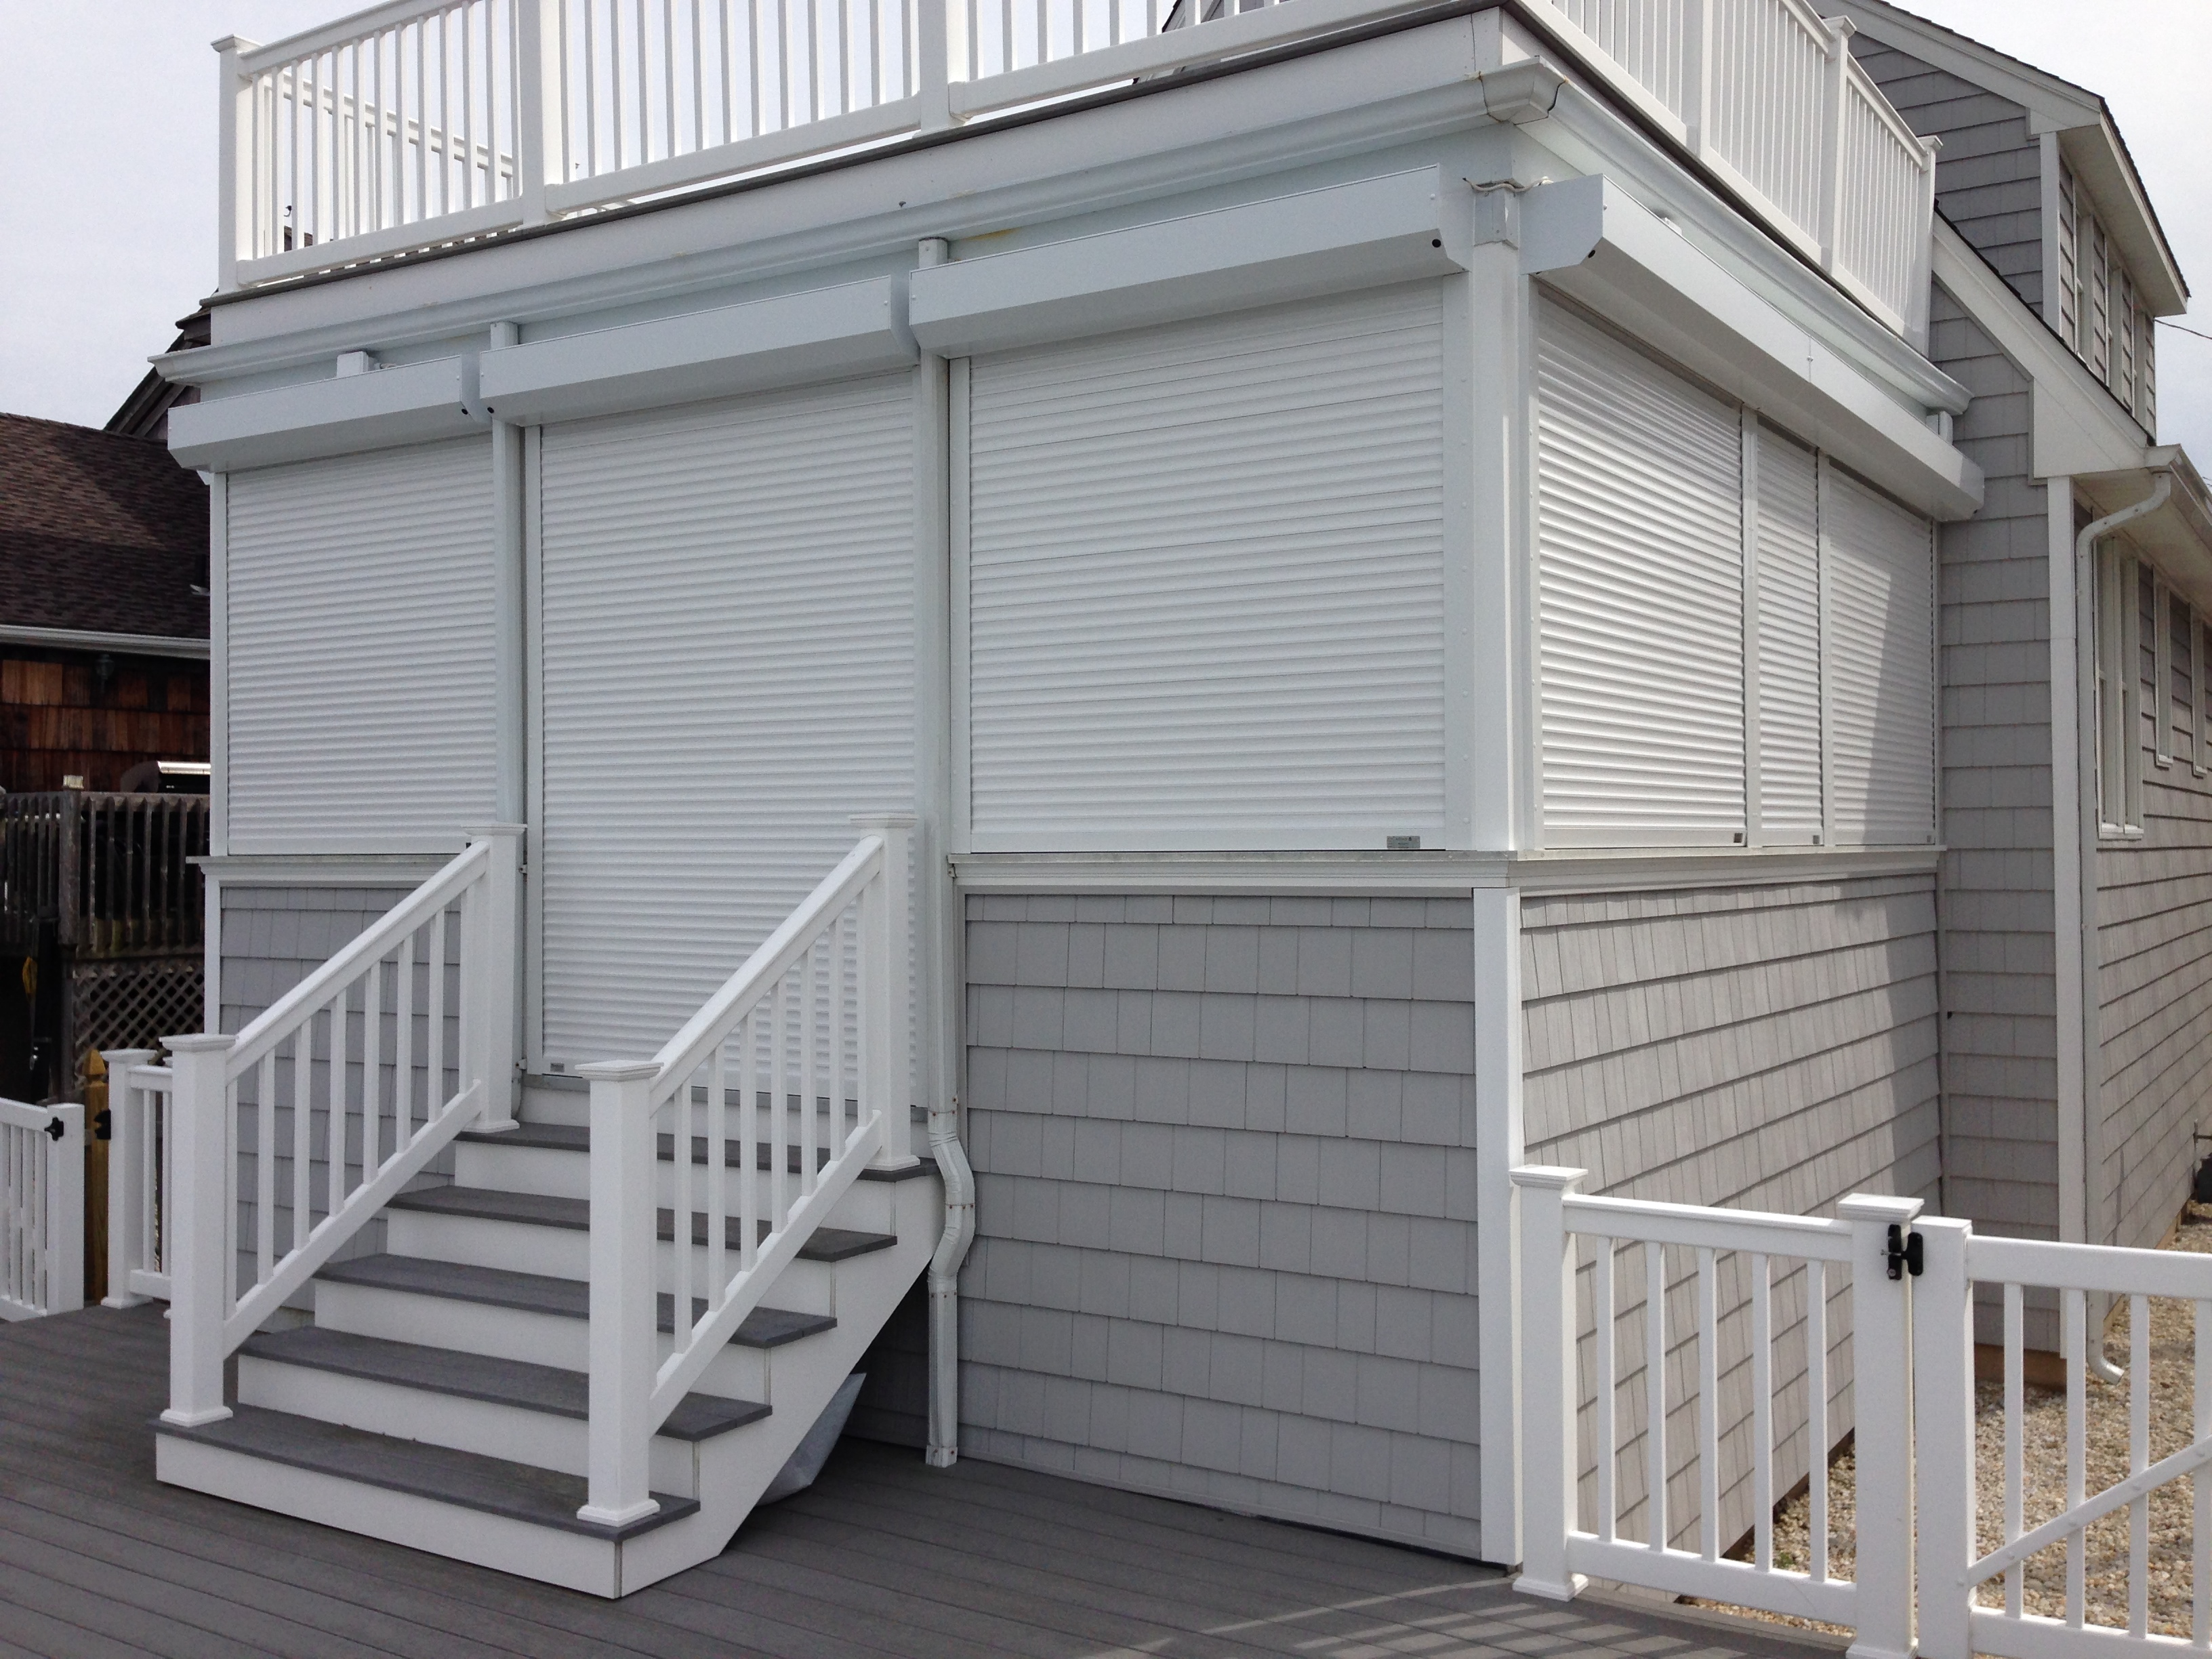 Windows Amp Doors In Cape May Nj Hurricane Shutters Gallery